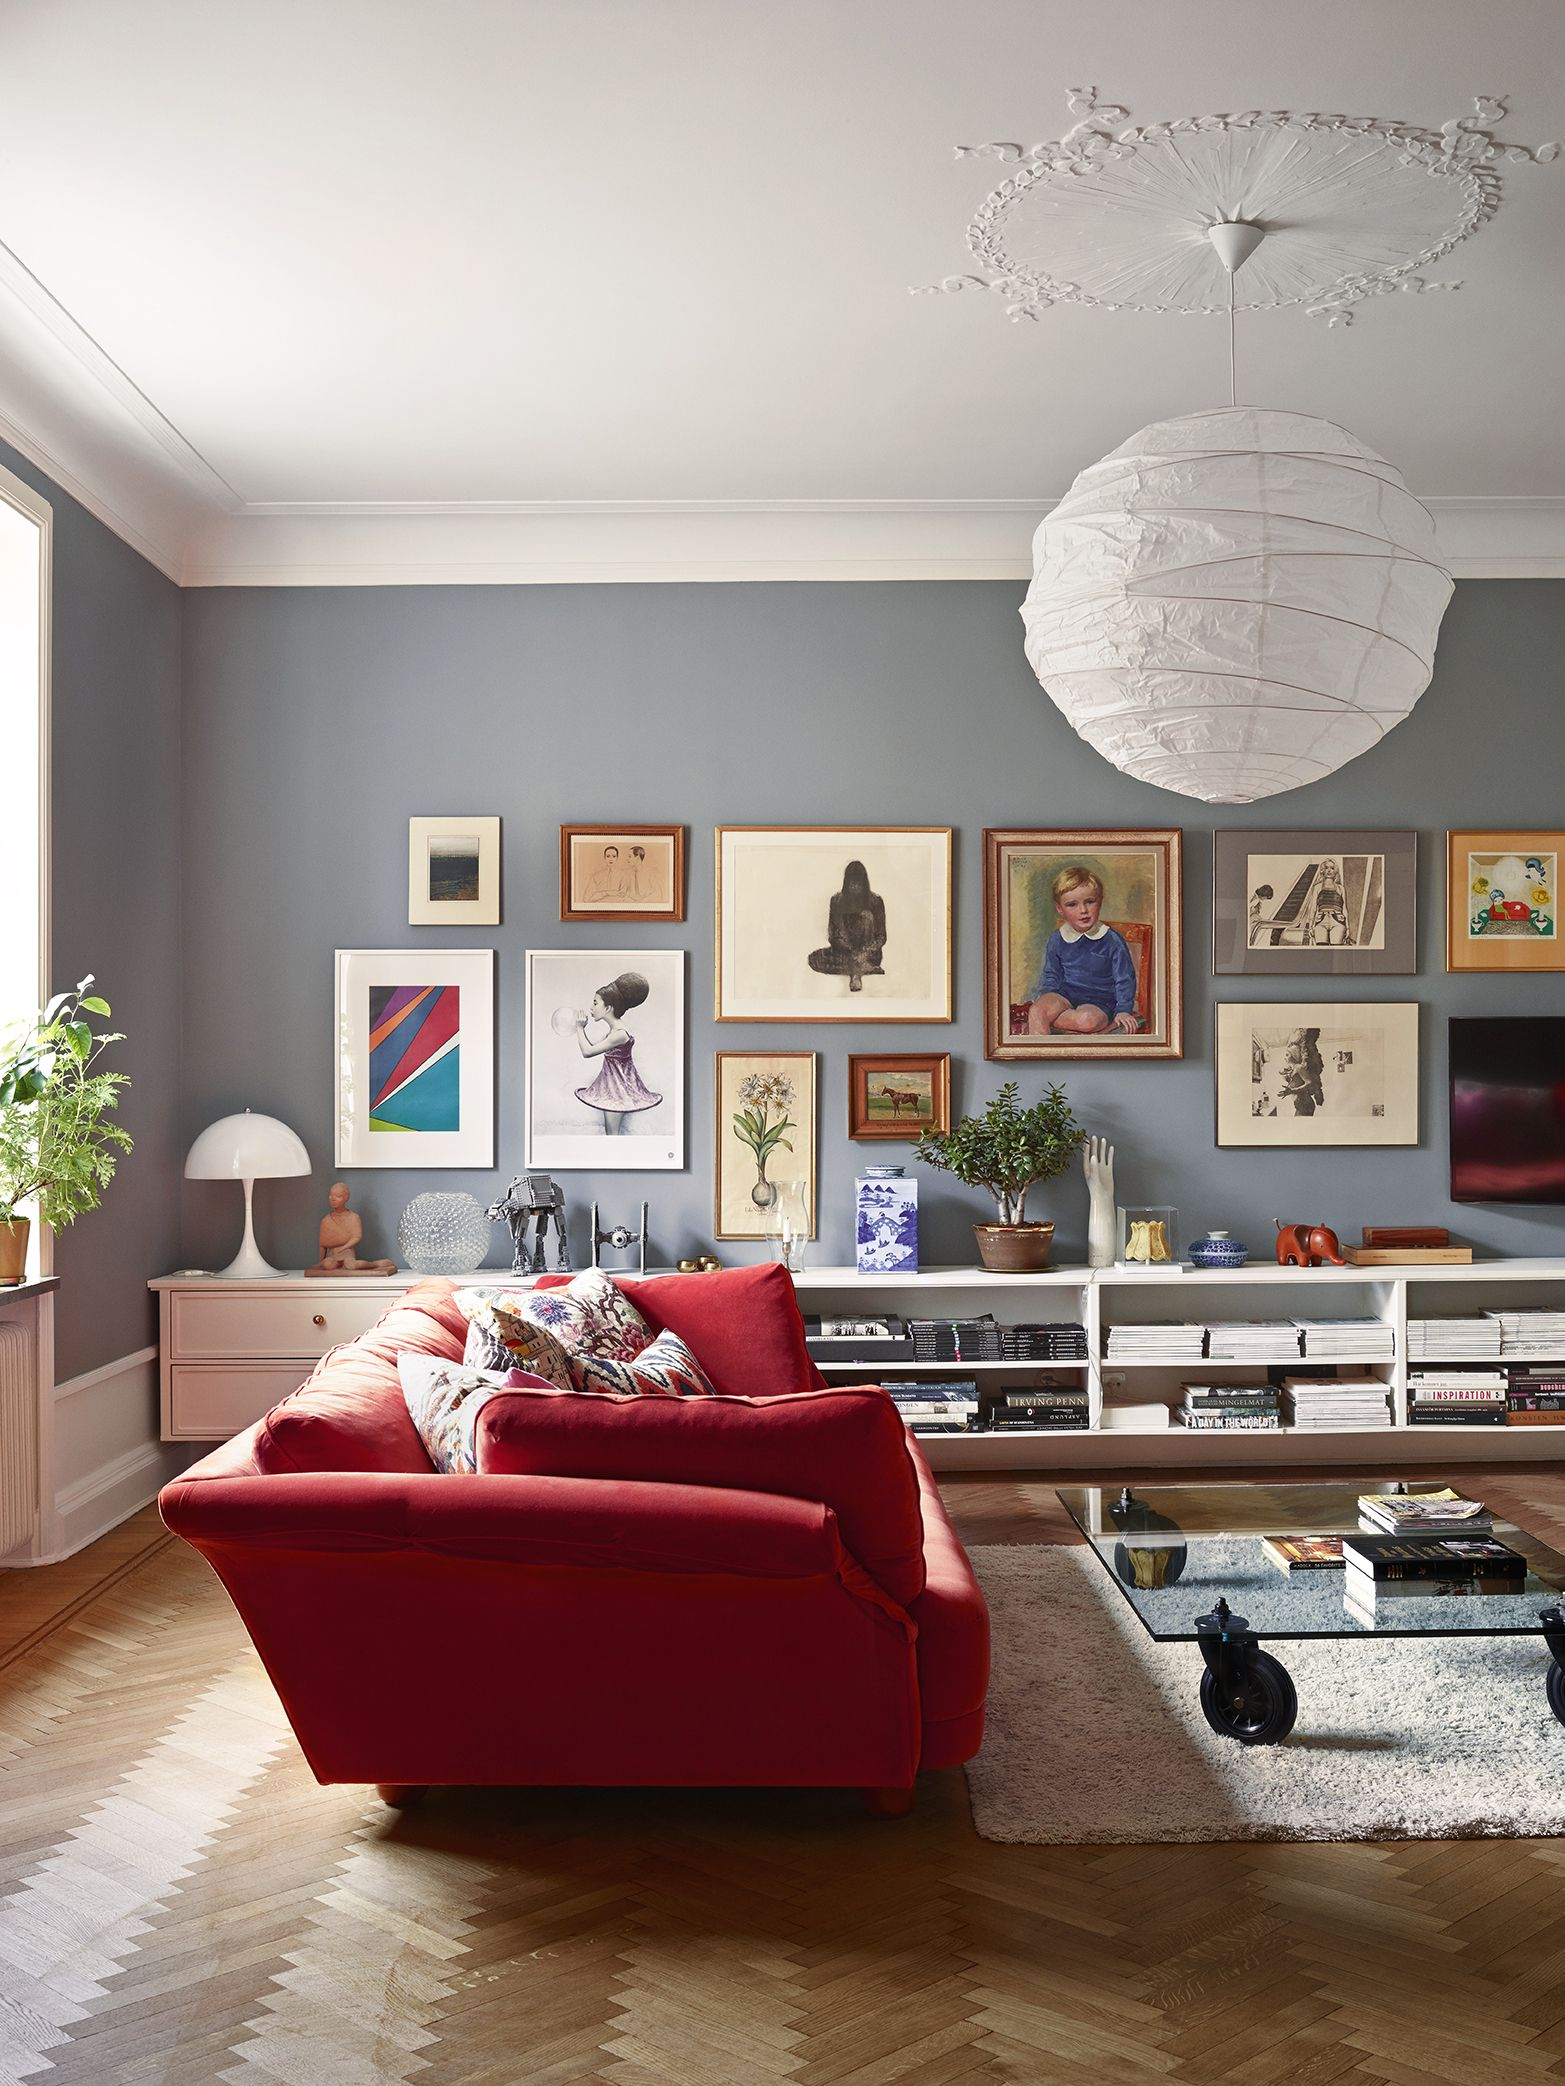 Wohnzimmer Rotes Sofa Stylist Saša Antić Photography Idha Lindhag For The Walls